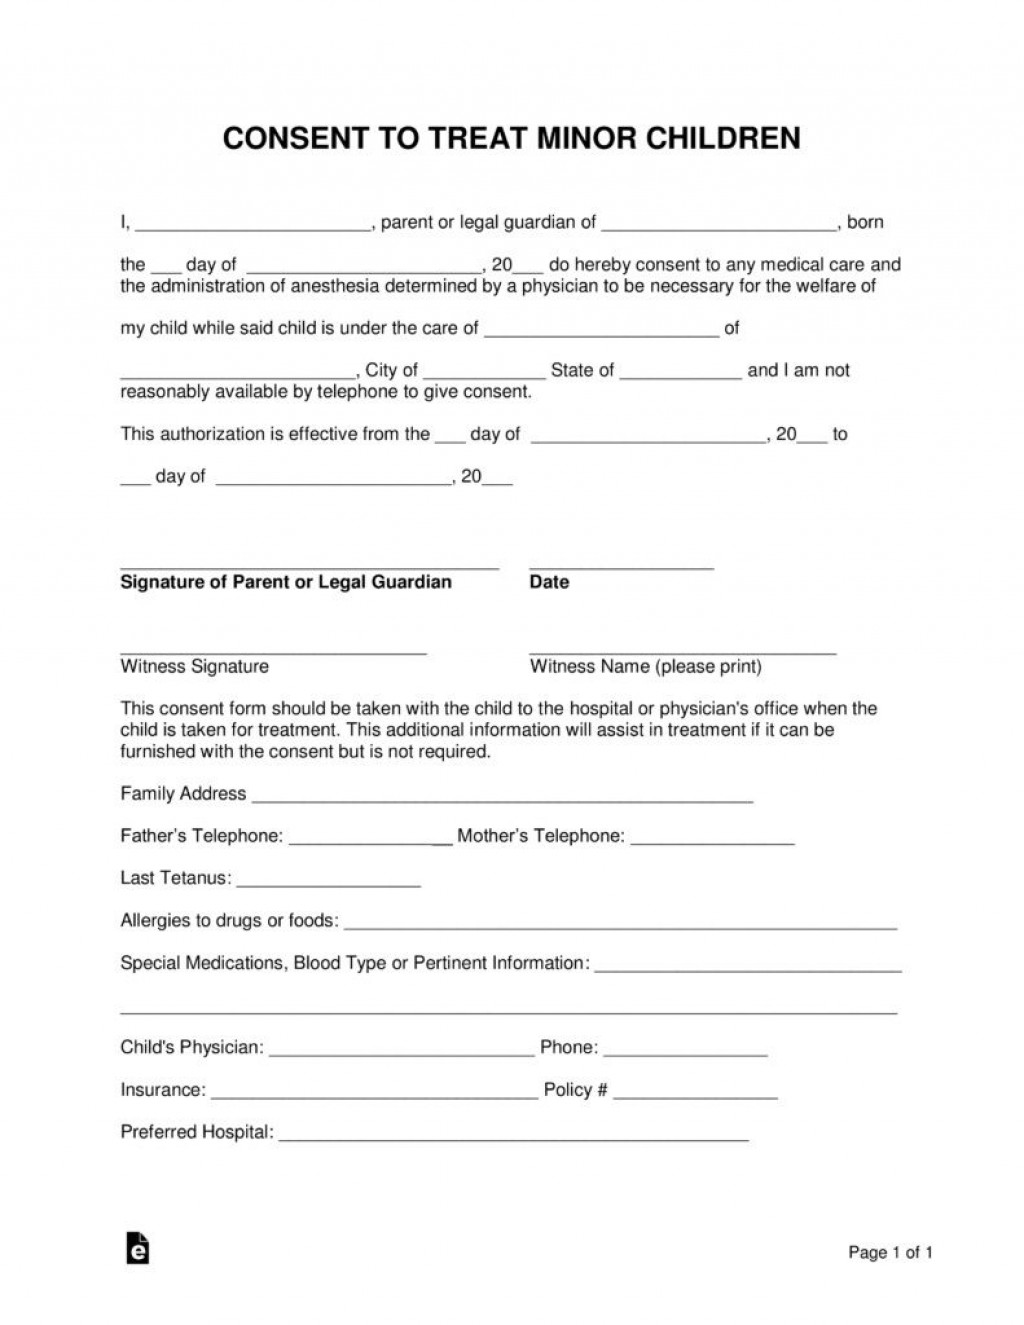 000 Wonderful Medical Release Form Template High Definition  Free Consent Uk For MinorLarge